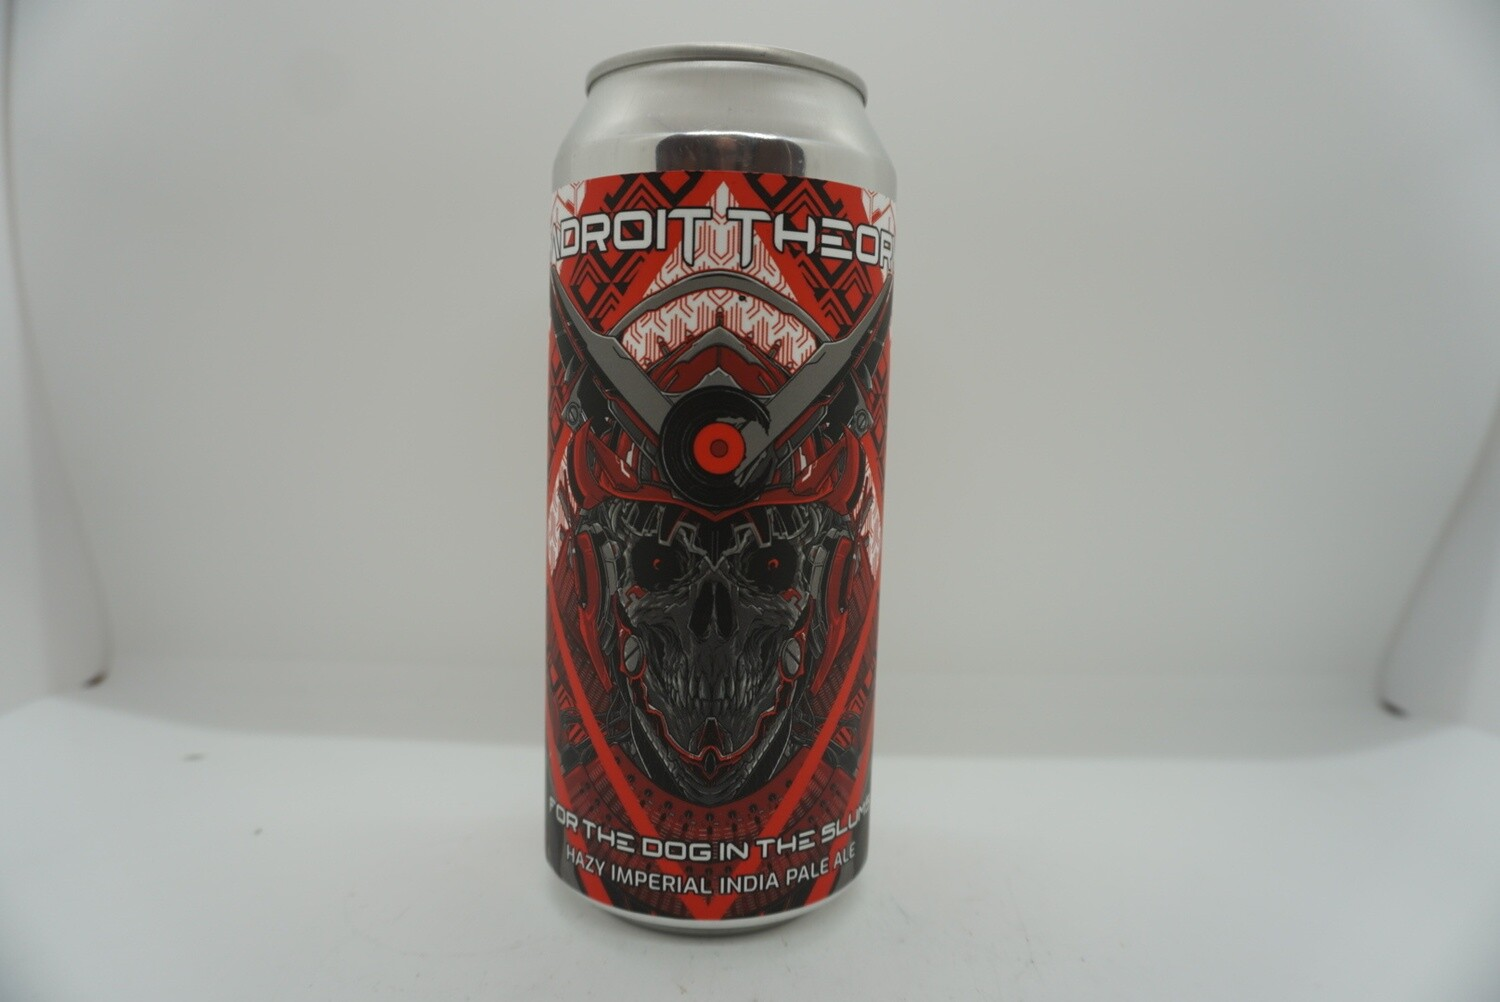 Adroit Theory - For The Dog In The Slums - DIPA - 8% ABV - 16oz Can